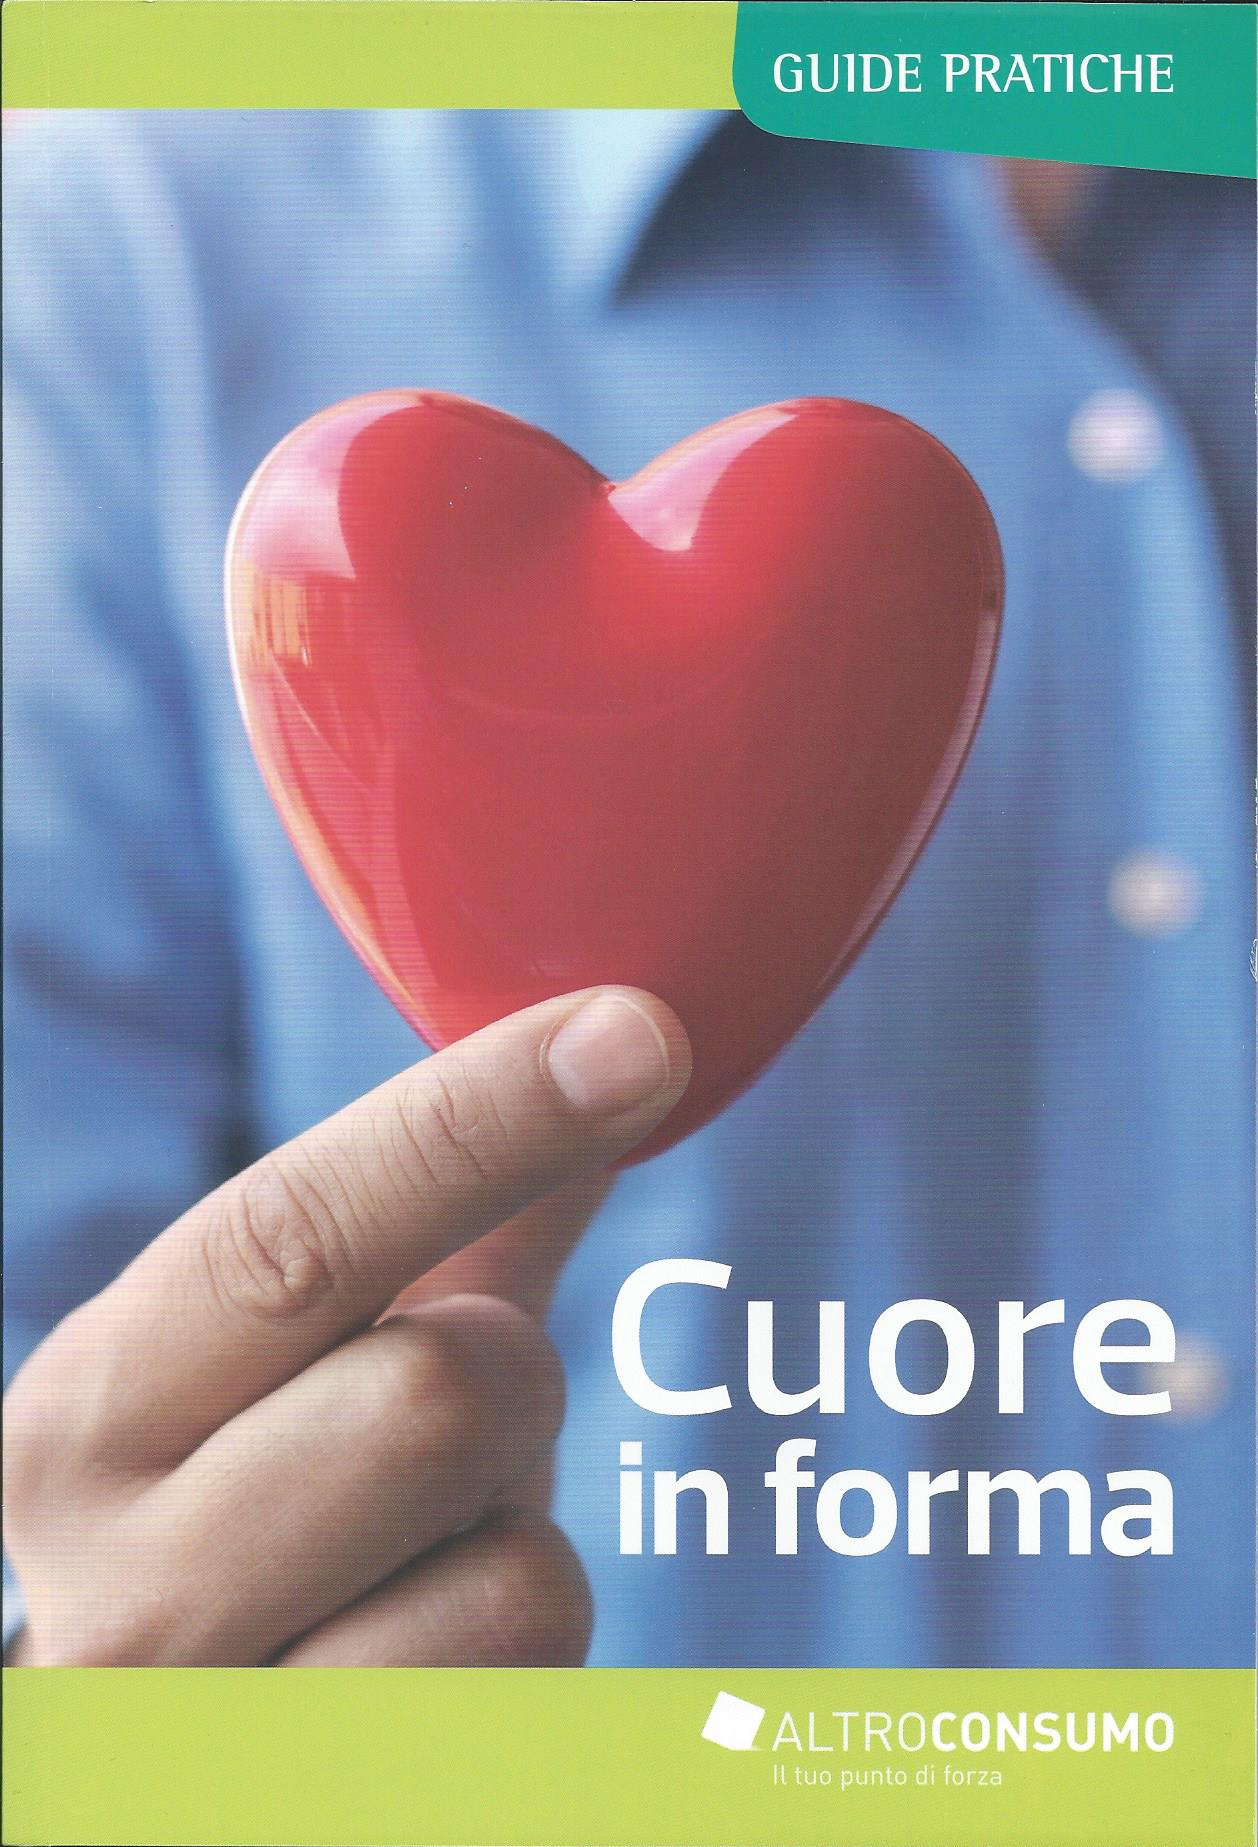 Cuore in forma